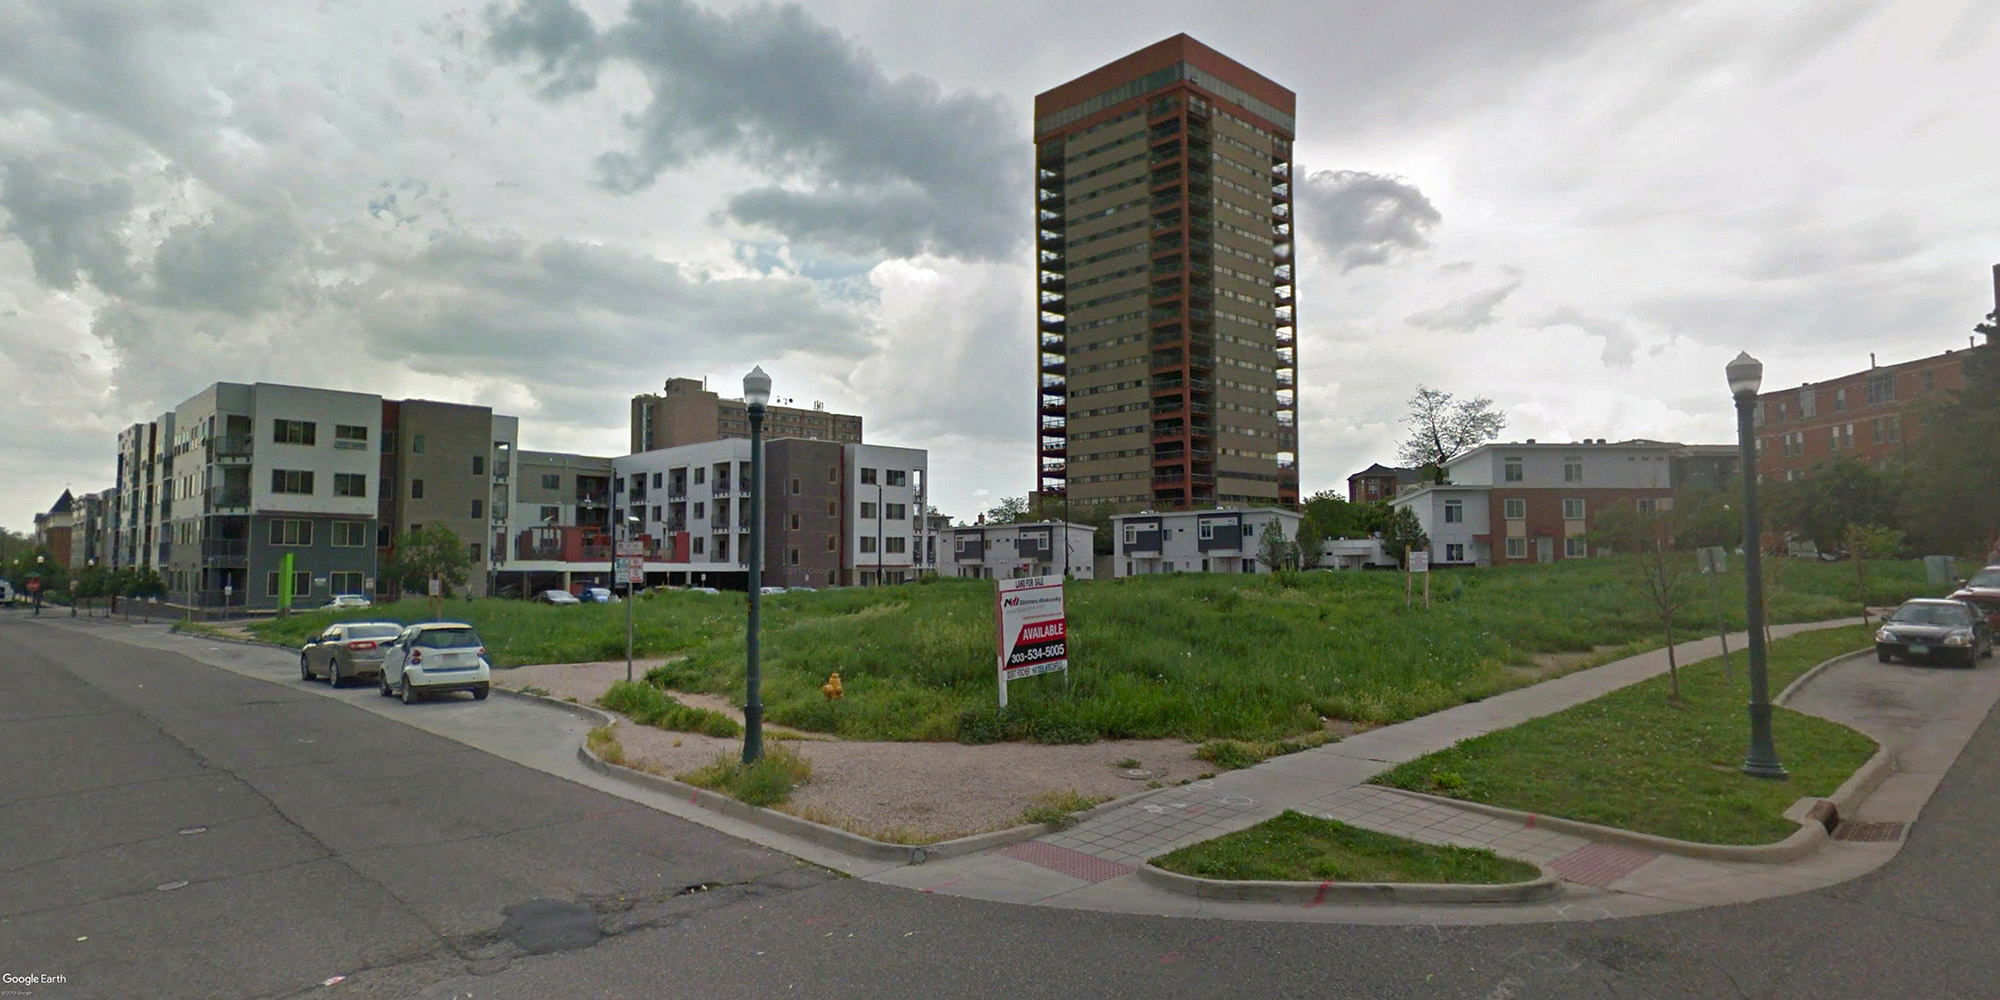 Google street view of the 575 East 20th Avenue site looking east